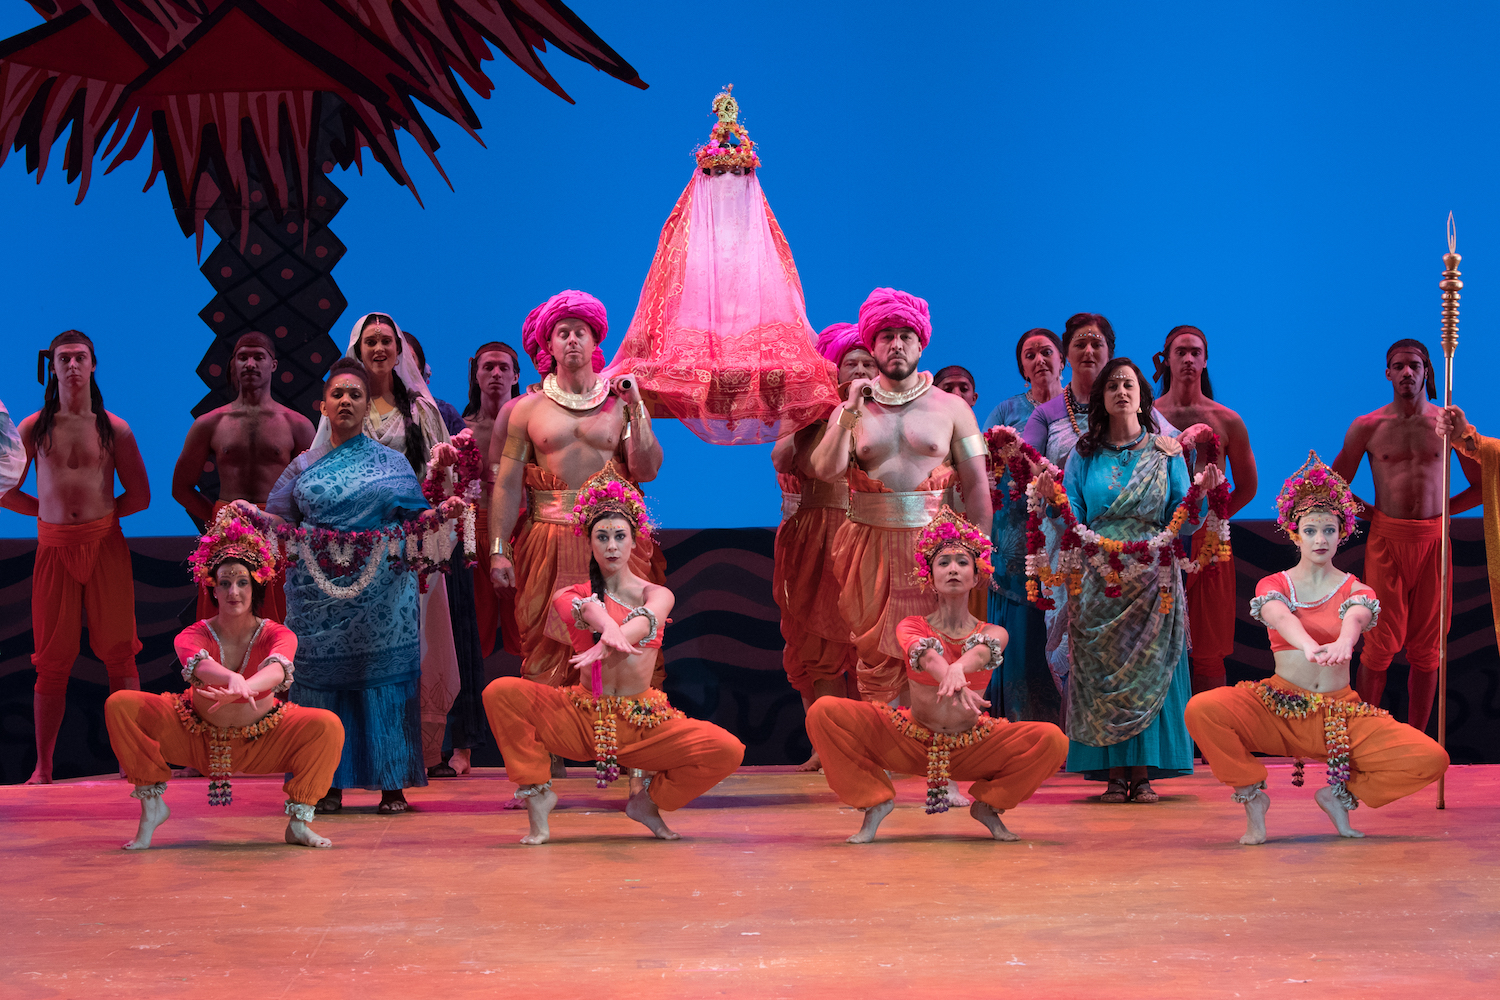 REVIEW: Visually appealing 'Pearl Fishers' entertains by embracing the opera's conundrums